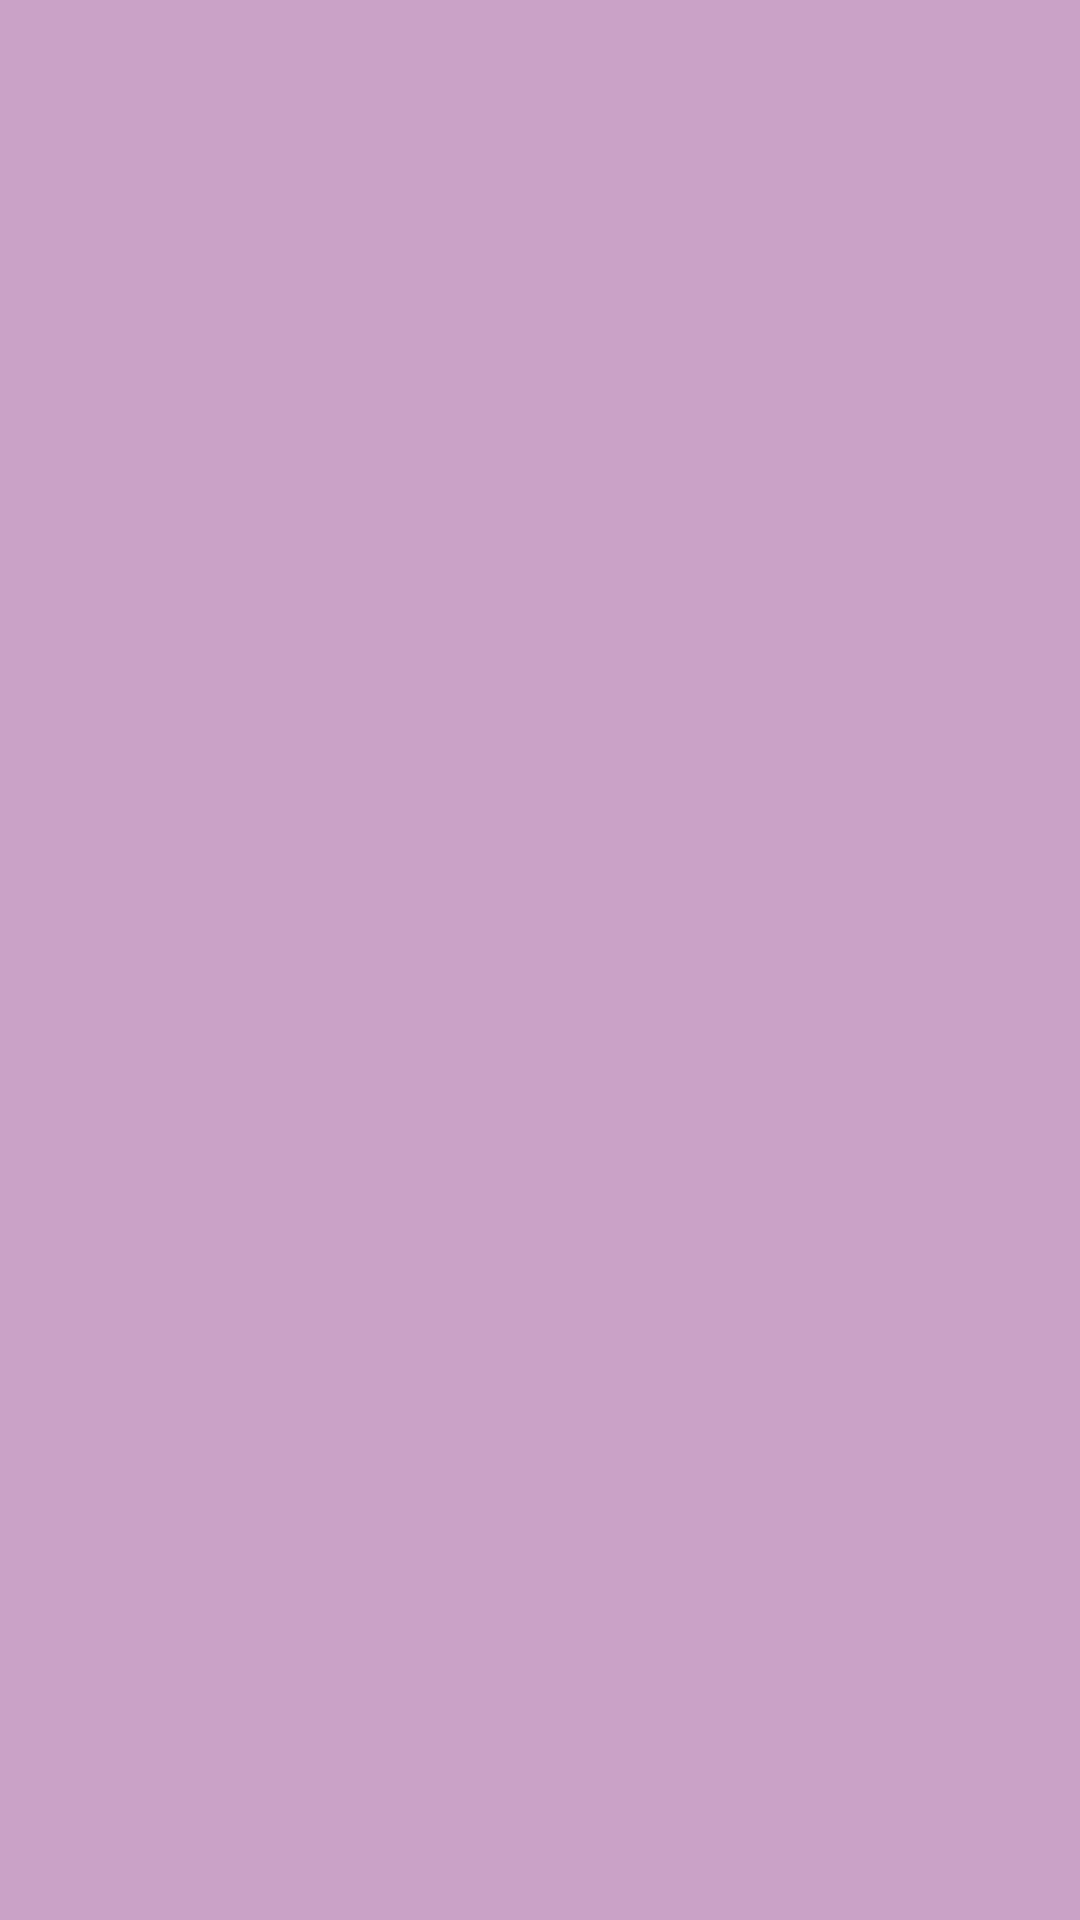 1080x1920 Lilac Solid Color Background